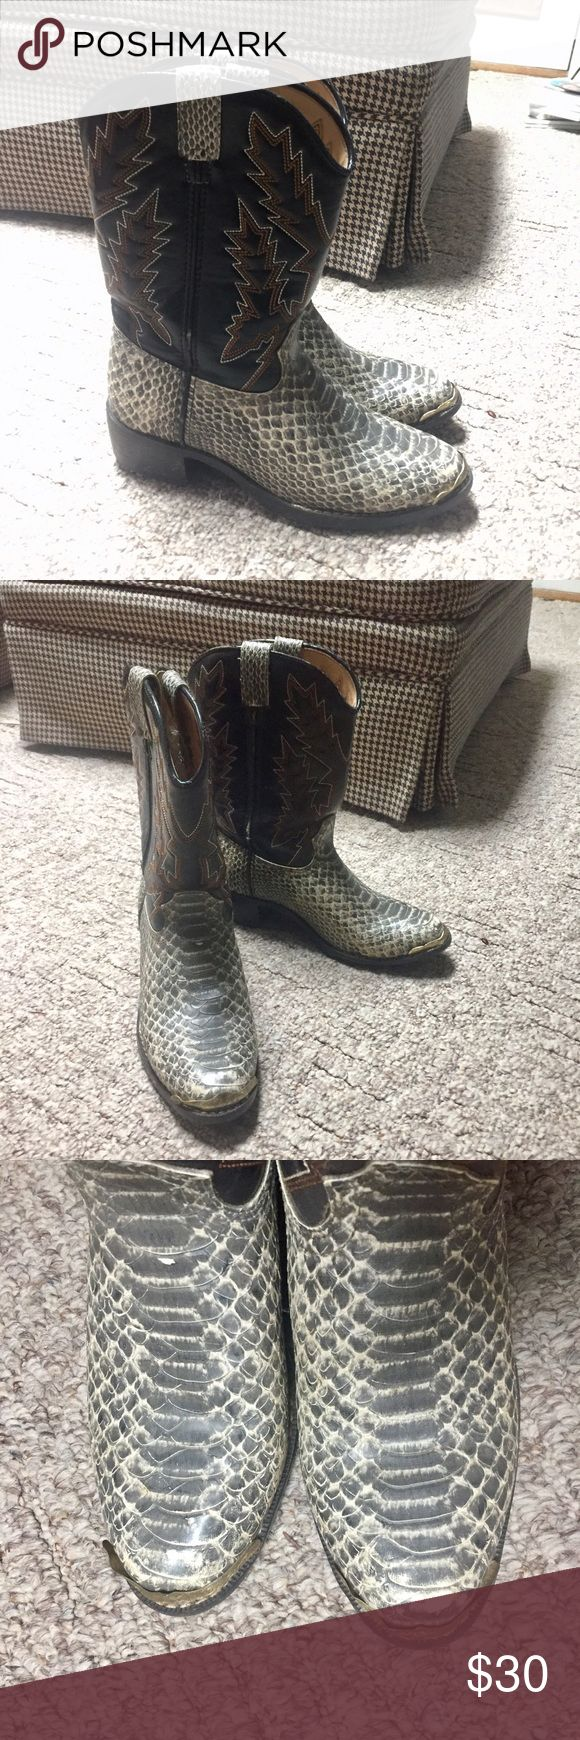 Kids Durango Snakeskin Cowboy Boots Ass kicking kid cowboy boots with snakeskin and leather. Worn before but Saturday boots with many more days ahead of them. They look great! The metal on the front of the right toe is bended slightly. Still, in very good condition! Durango Shoes Boots